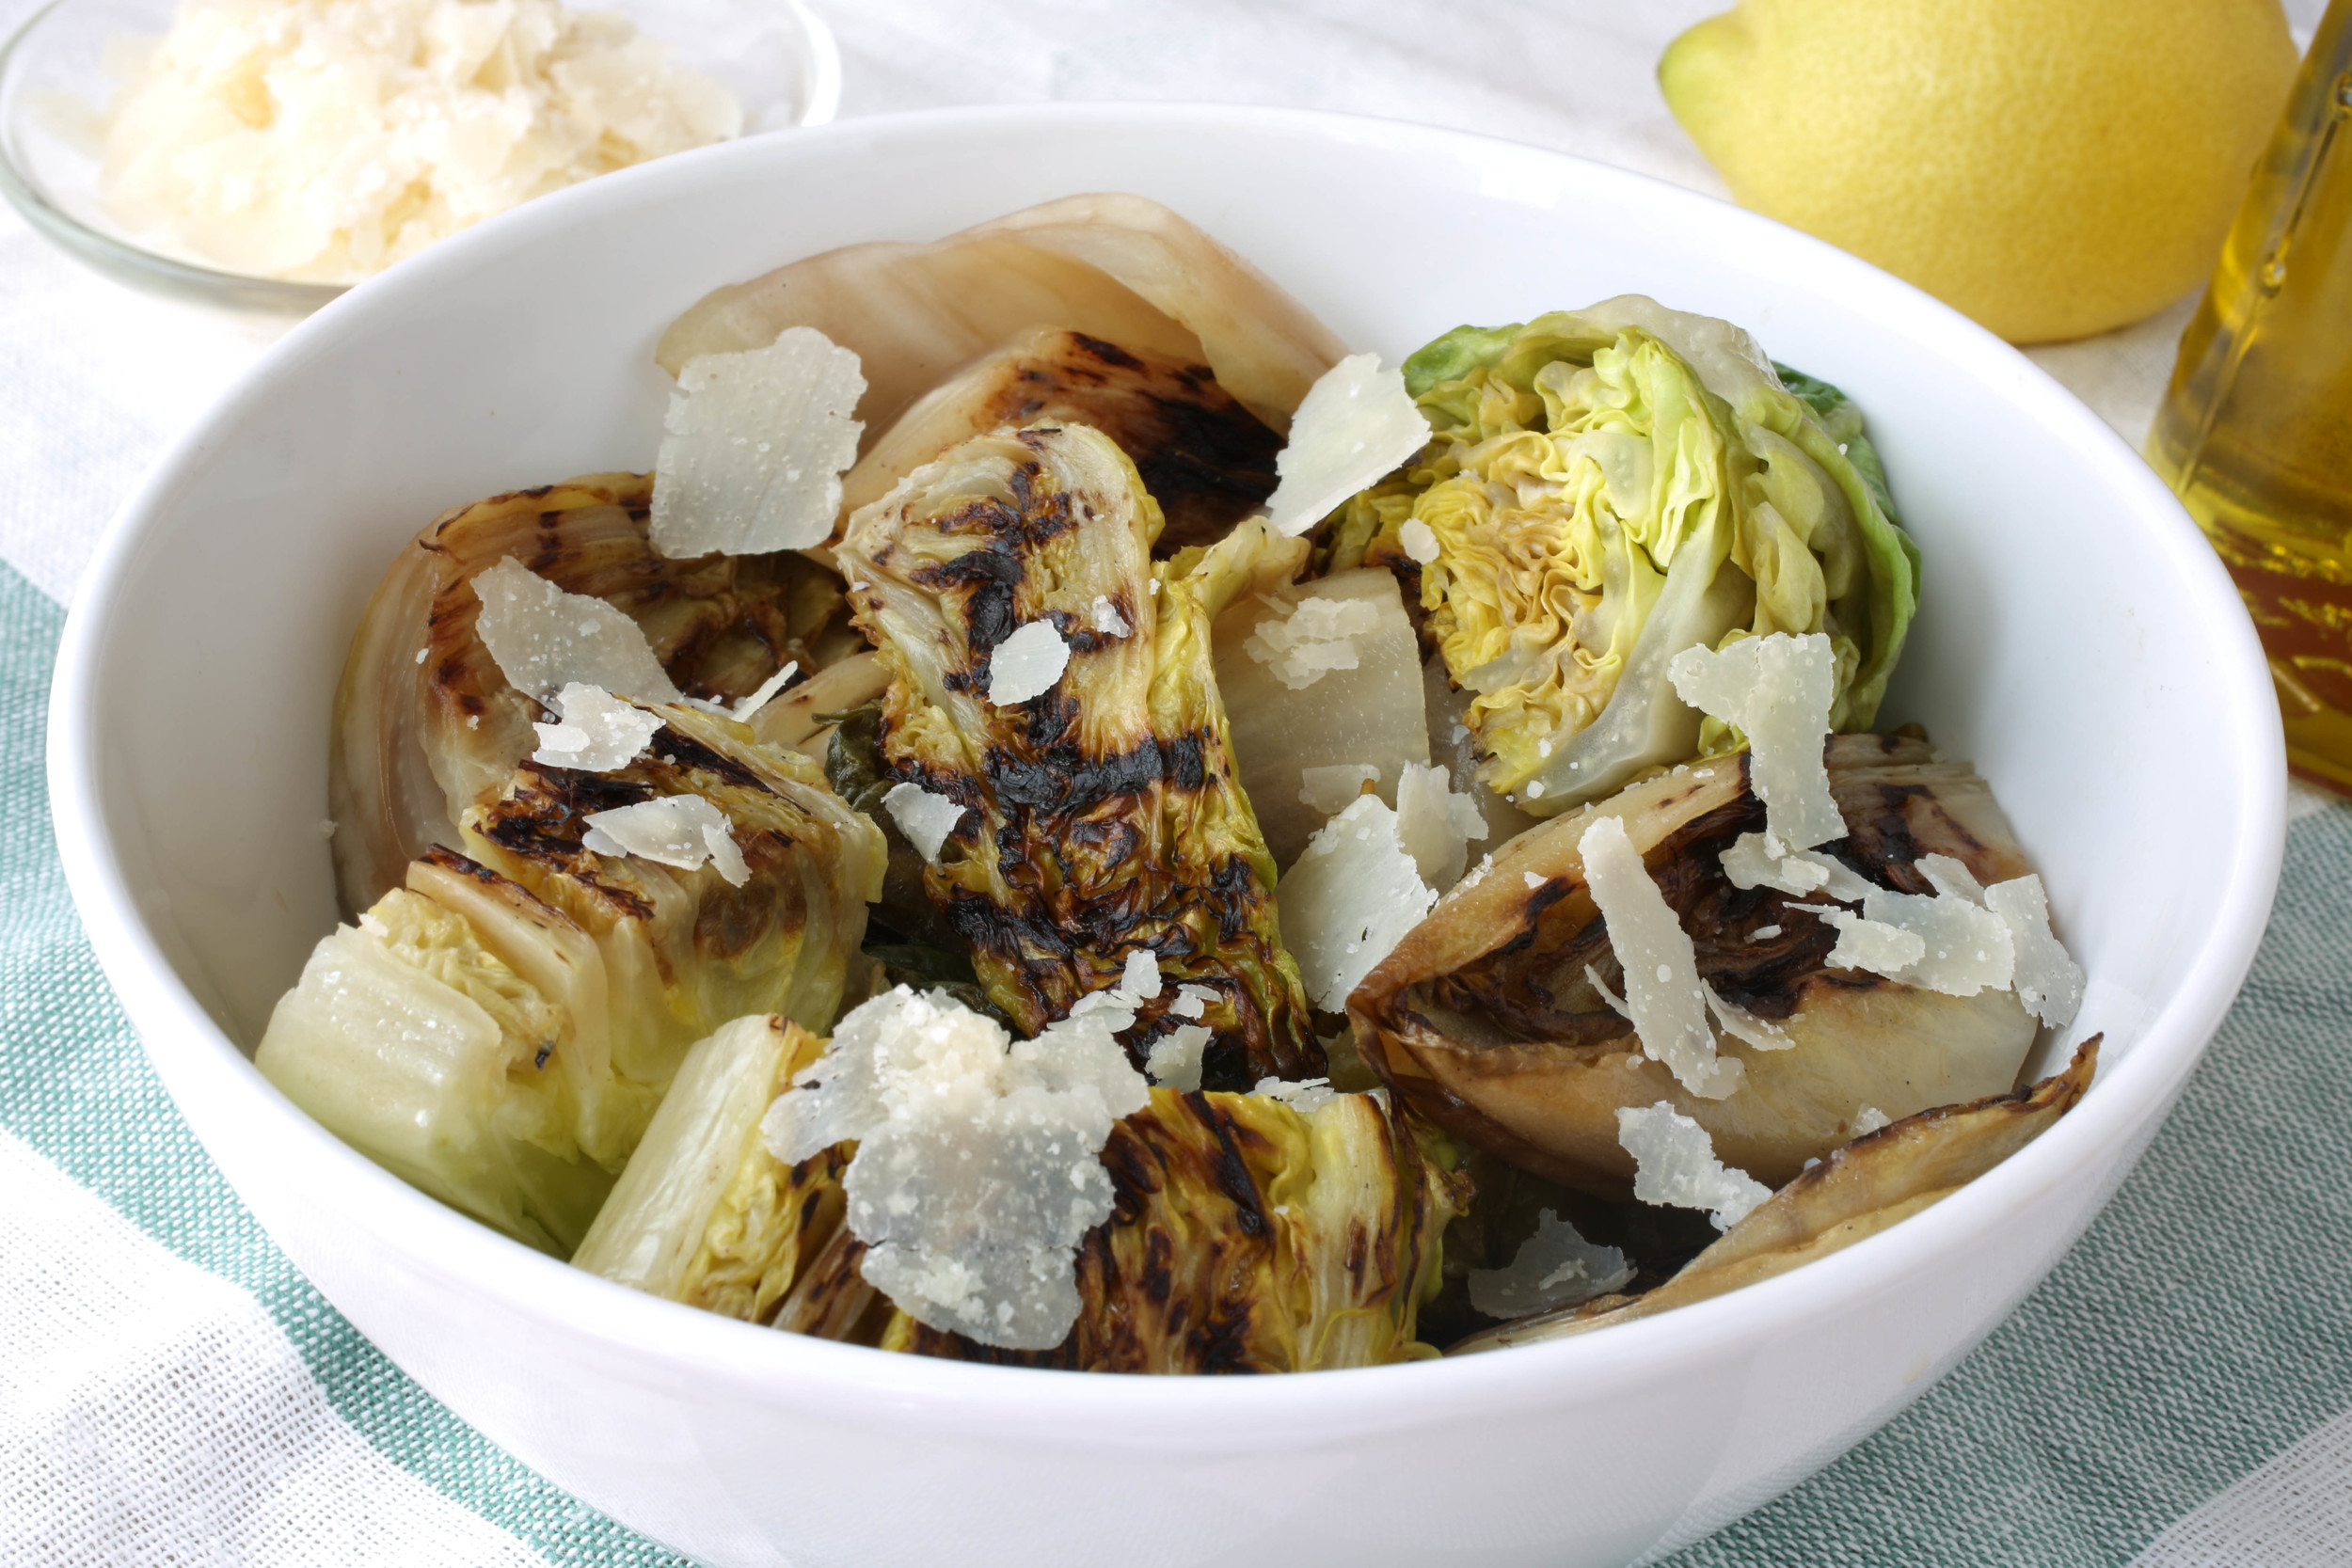 Grilled Endive and Romaine Salad